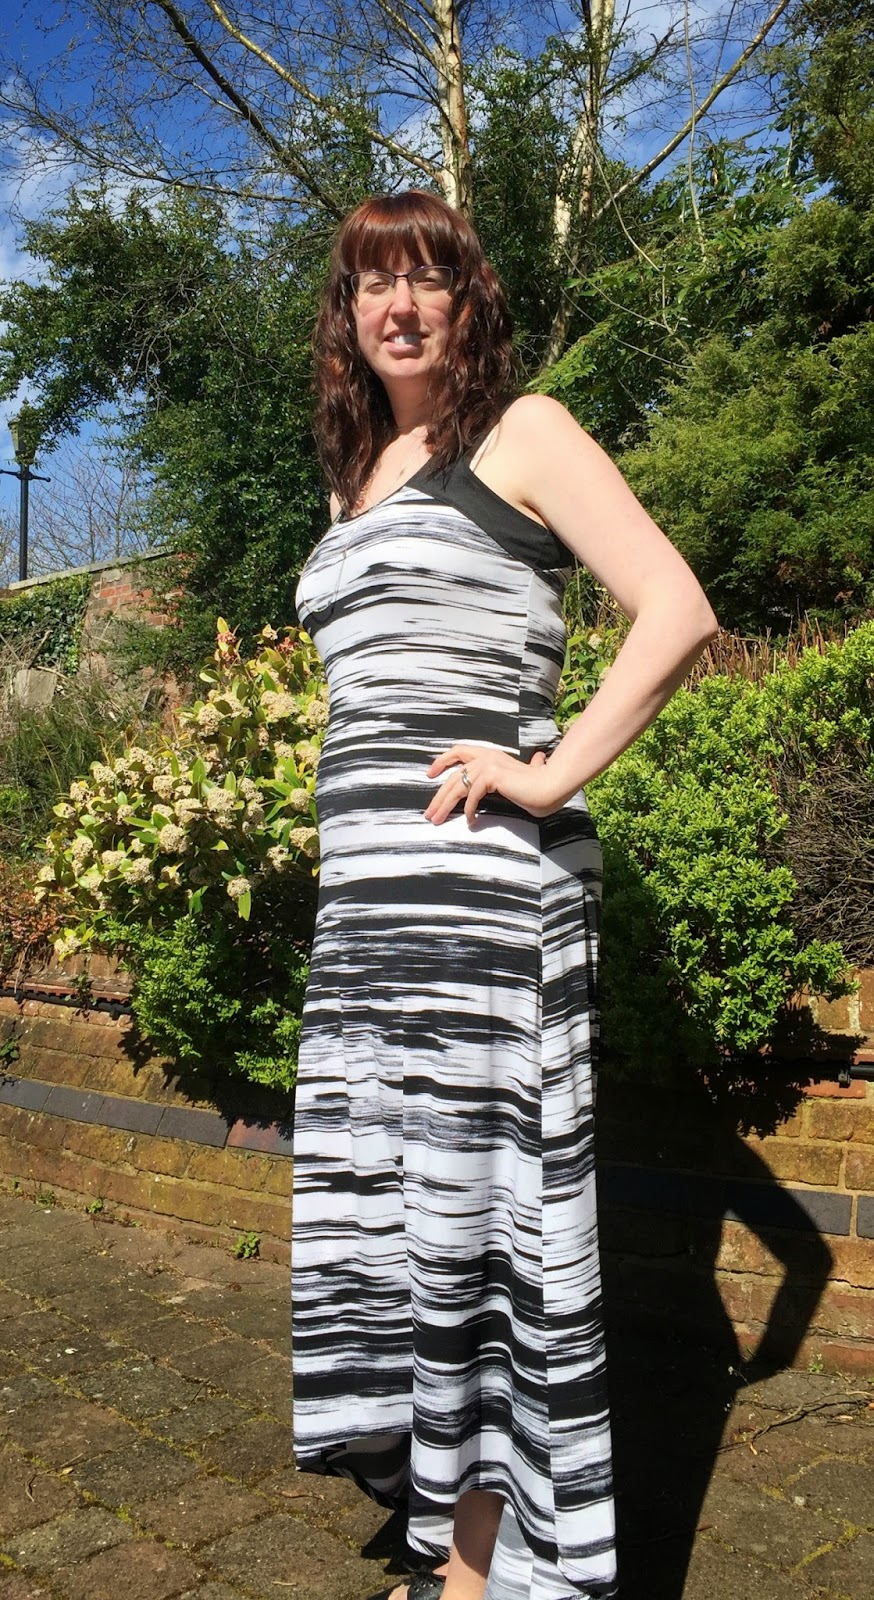 Morgan's Milieu | Episode Dip Hem Printed Maxi Dress Review: Morgan Prince wearing dim hem black and white maxi dress.